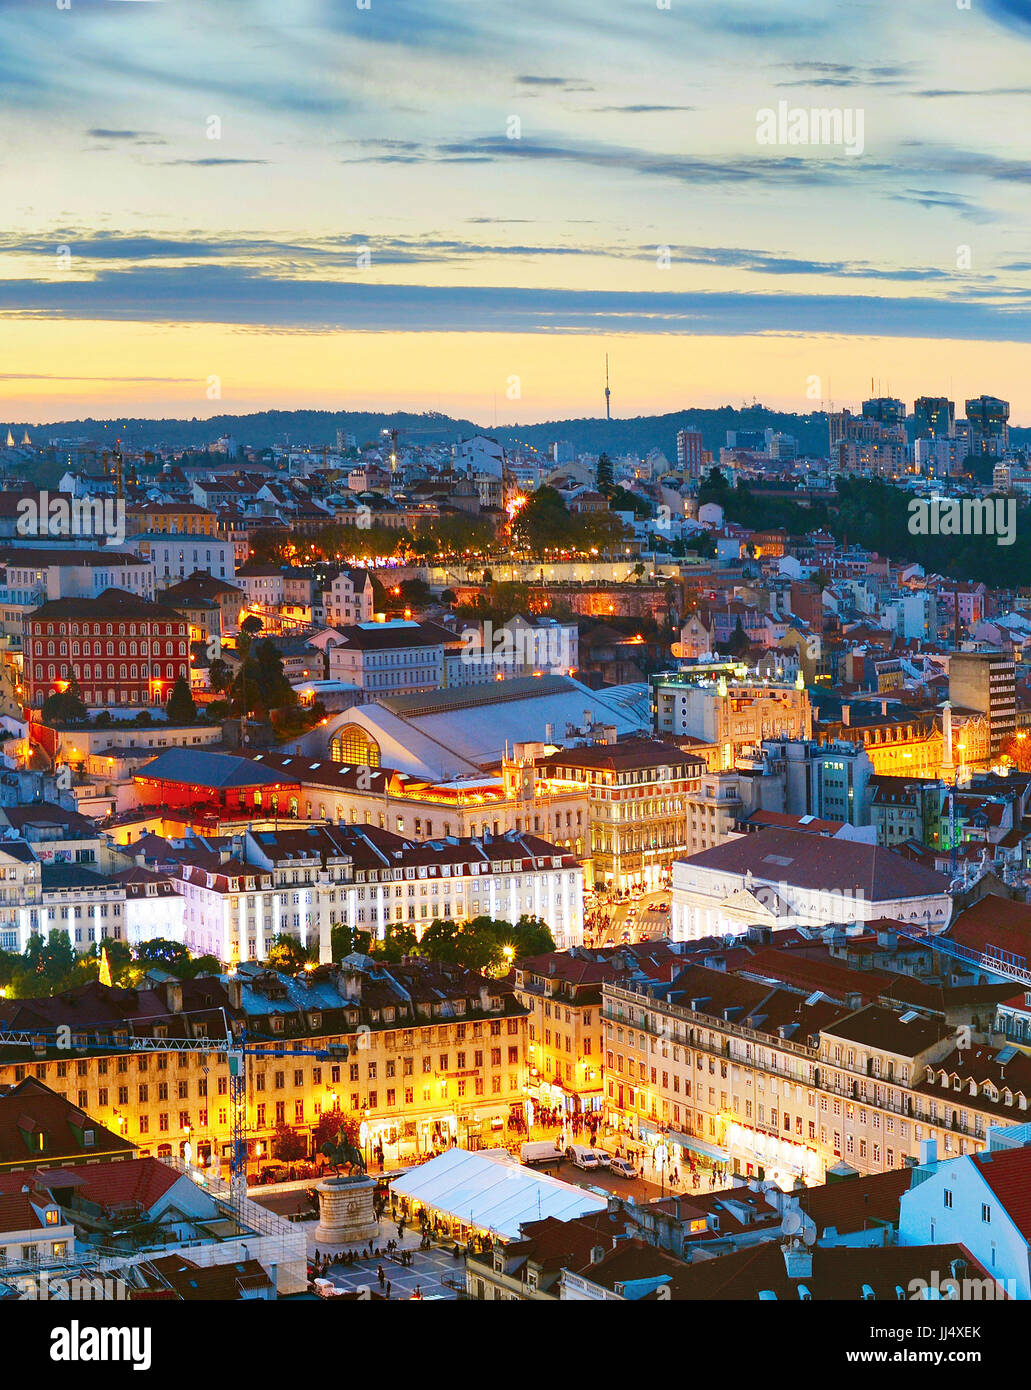 Lisbon city center aerial view in the beautiful twilight. Portugal - Stock Image